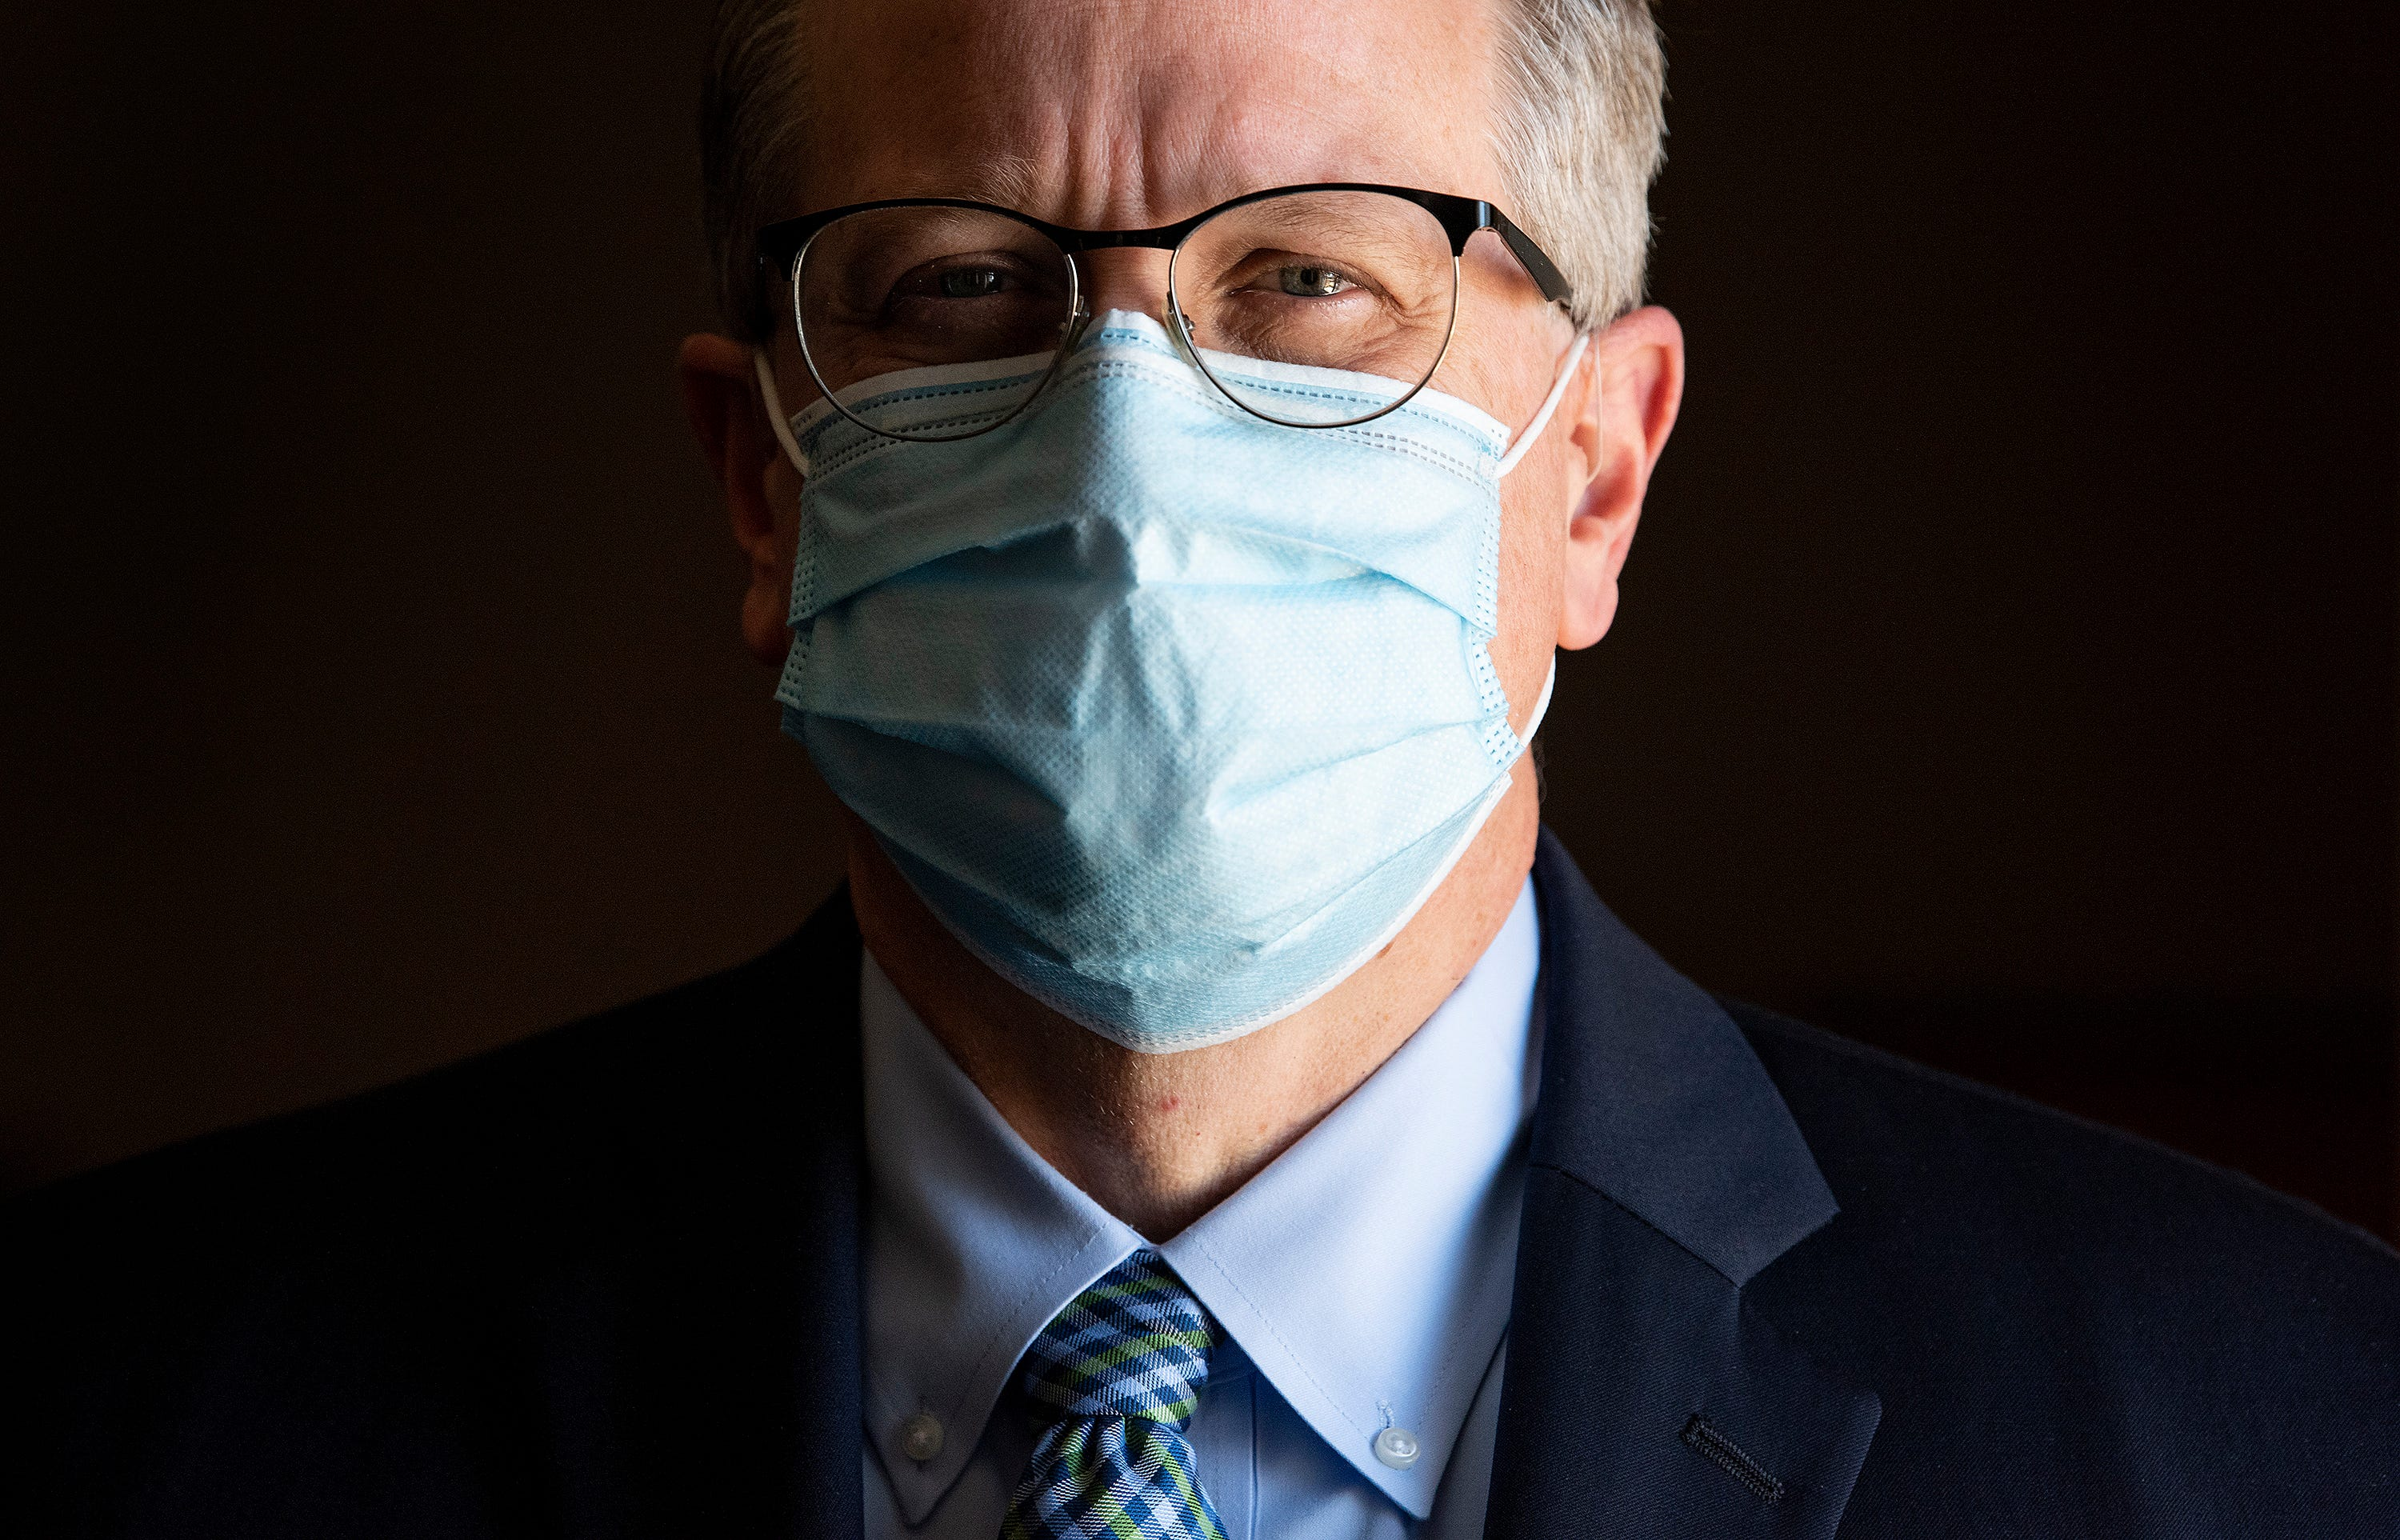 Dr. Scott Harris, Alabama's state health officer, says he saw politicization of the coronavirus beginning with the state's first official case in March.